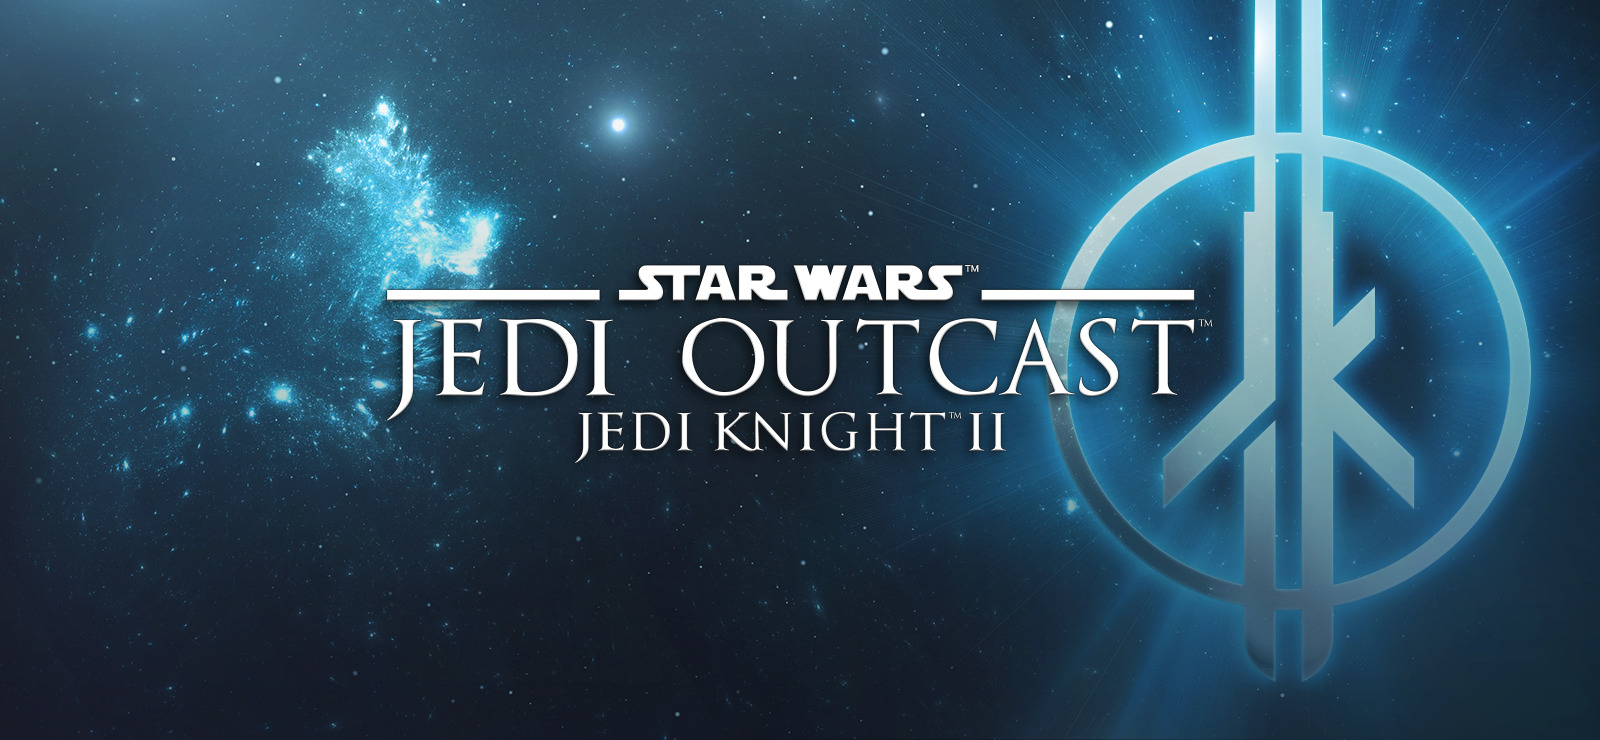 Star Wars Jedi Knight 2 Jedi Outcast poster